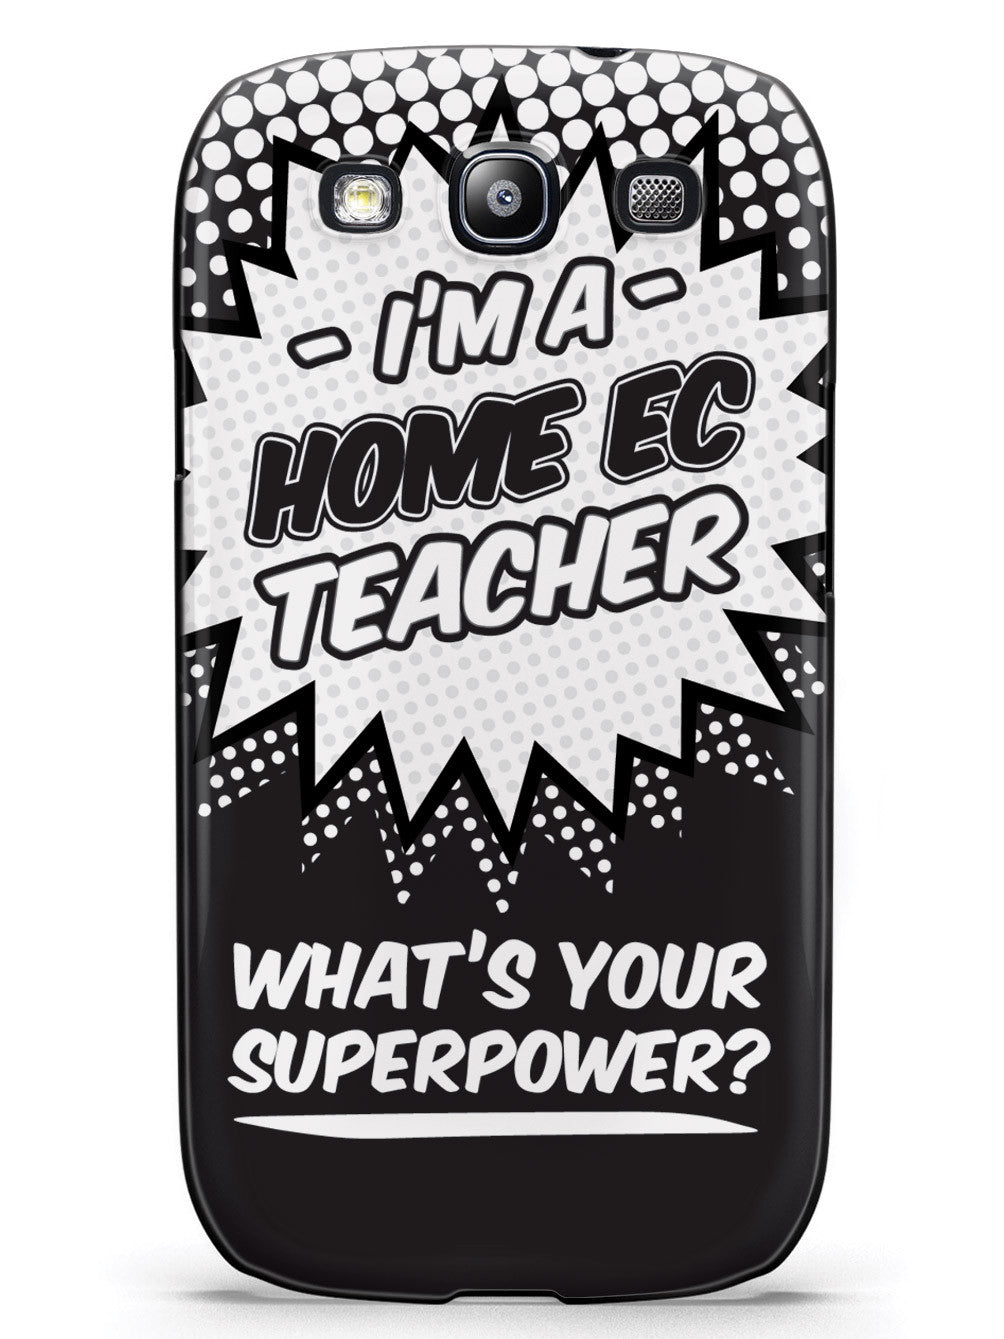 Home Ec Teacher - What's Your Superpower? Case